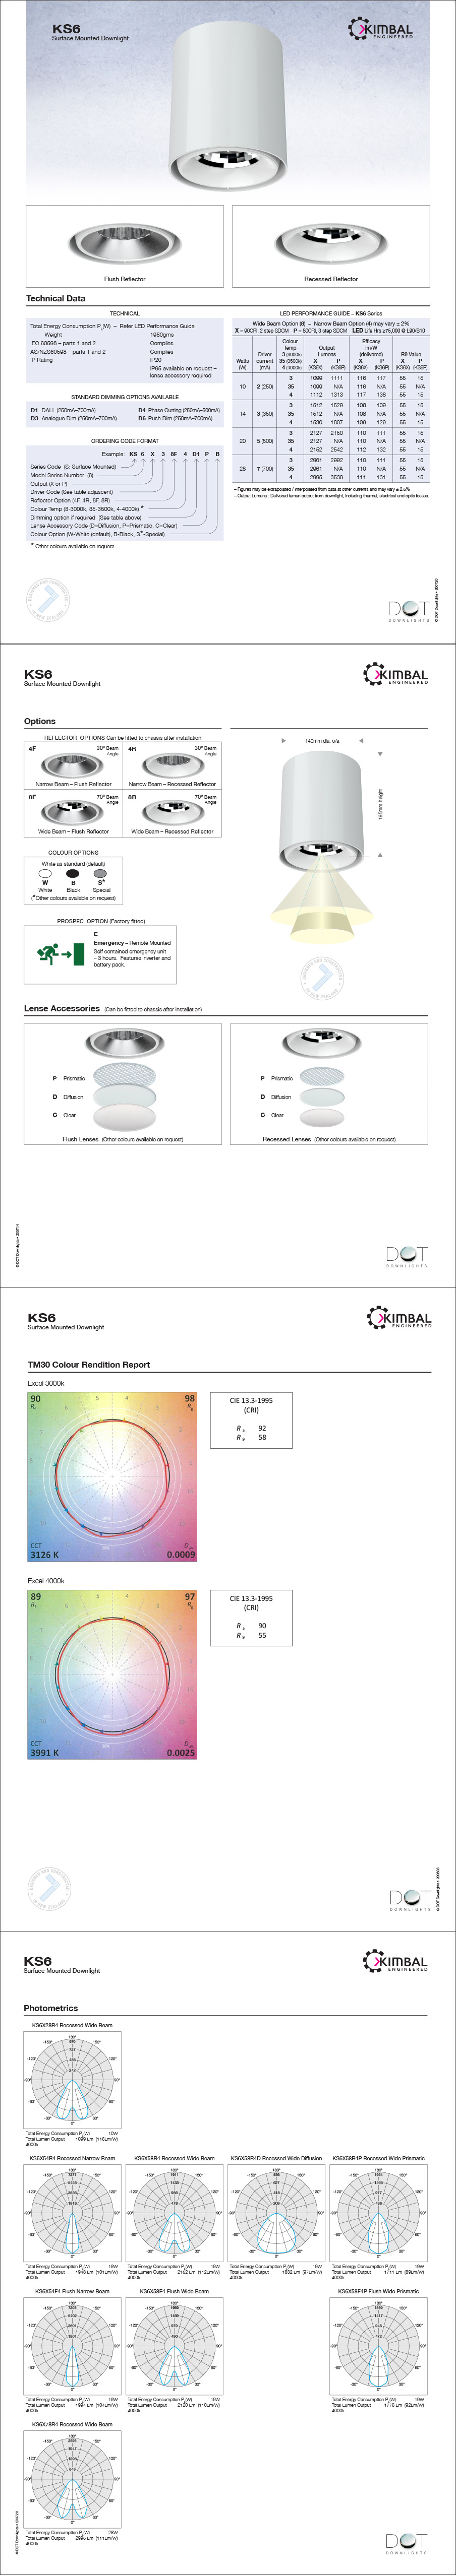 Kimbal KF6 - Surface Mounted Data Sheet